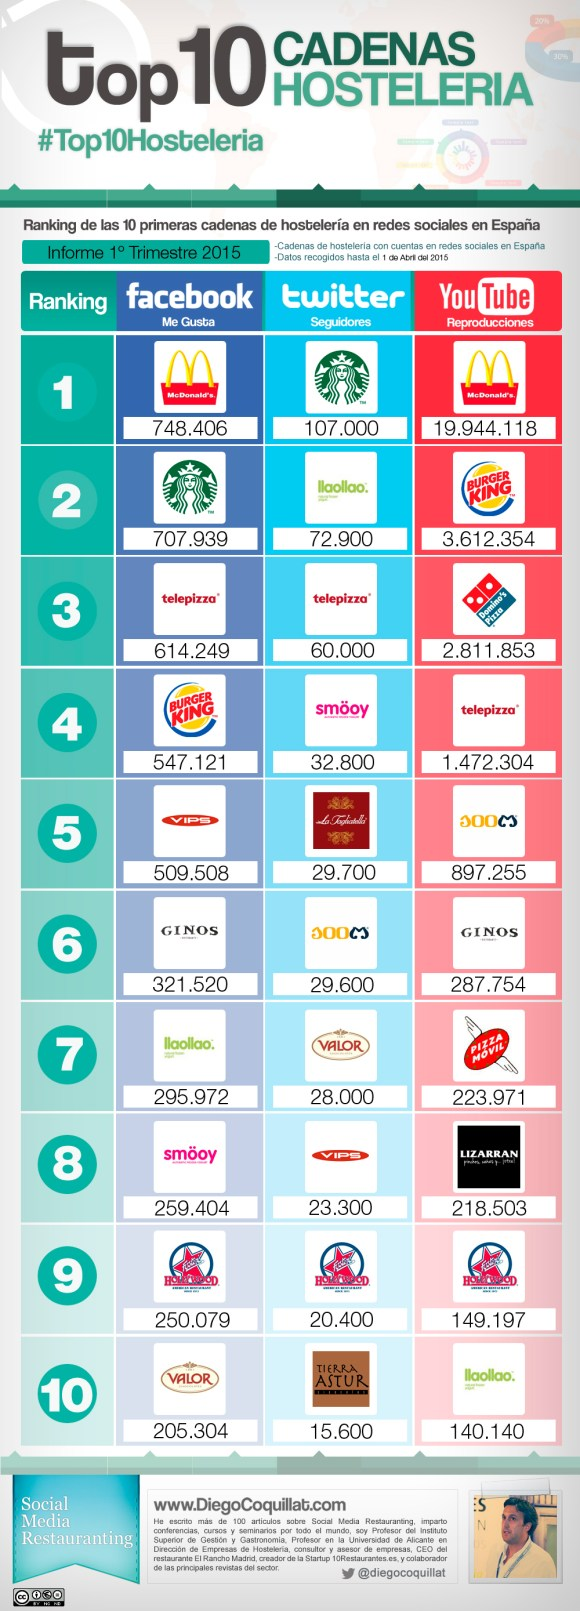 The best hospitality chains in social networks 2015 in Spain in the first quarter